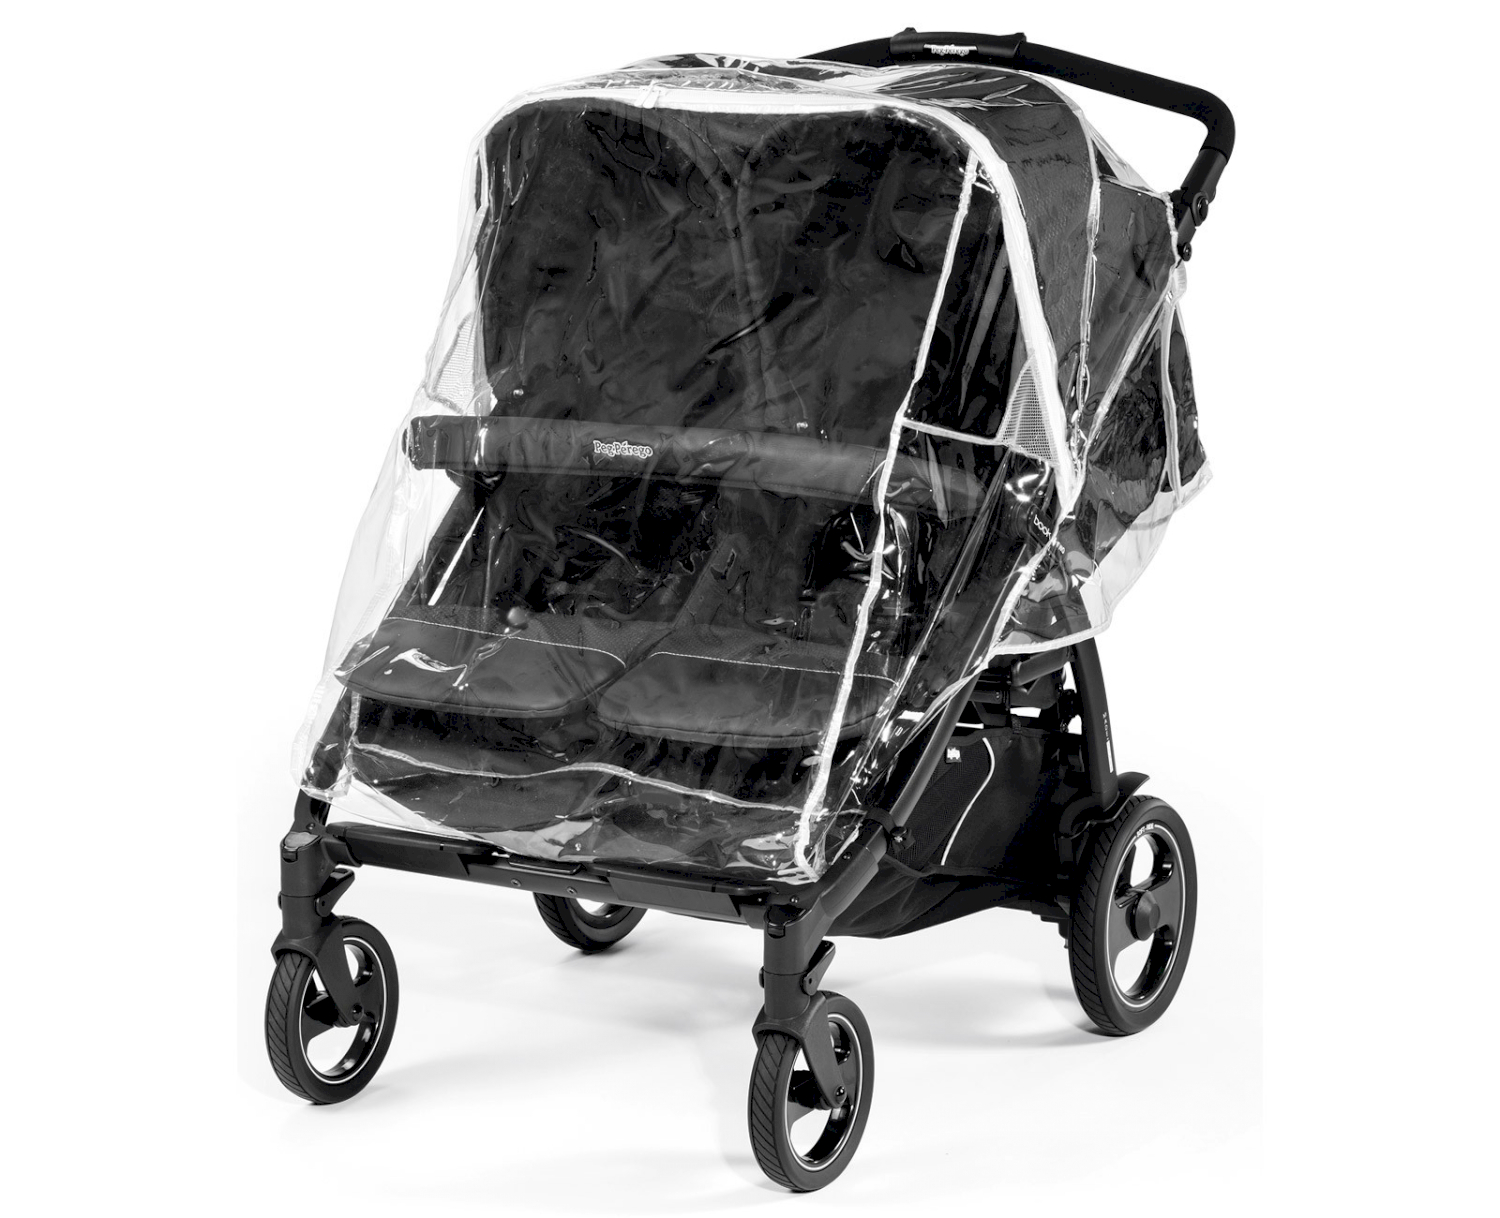 Peg Perego Burbuja de lluvia Book For Two